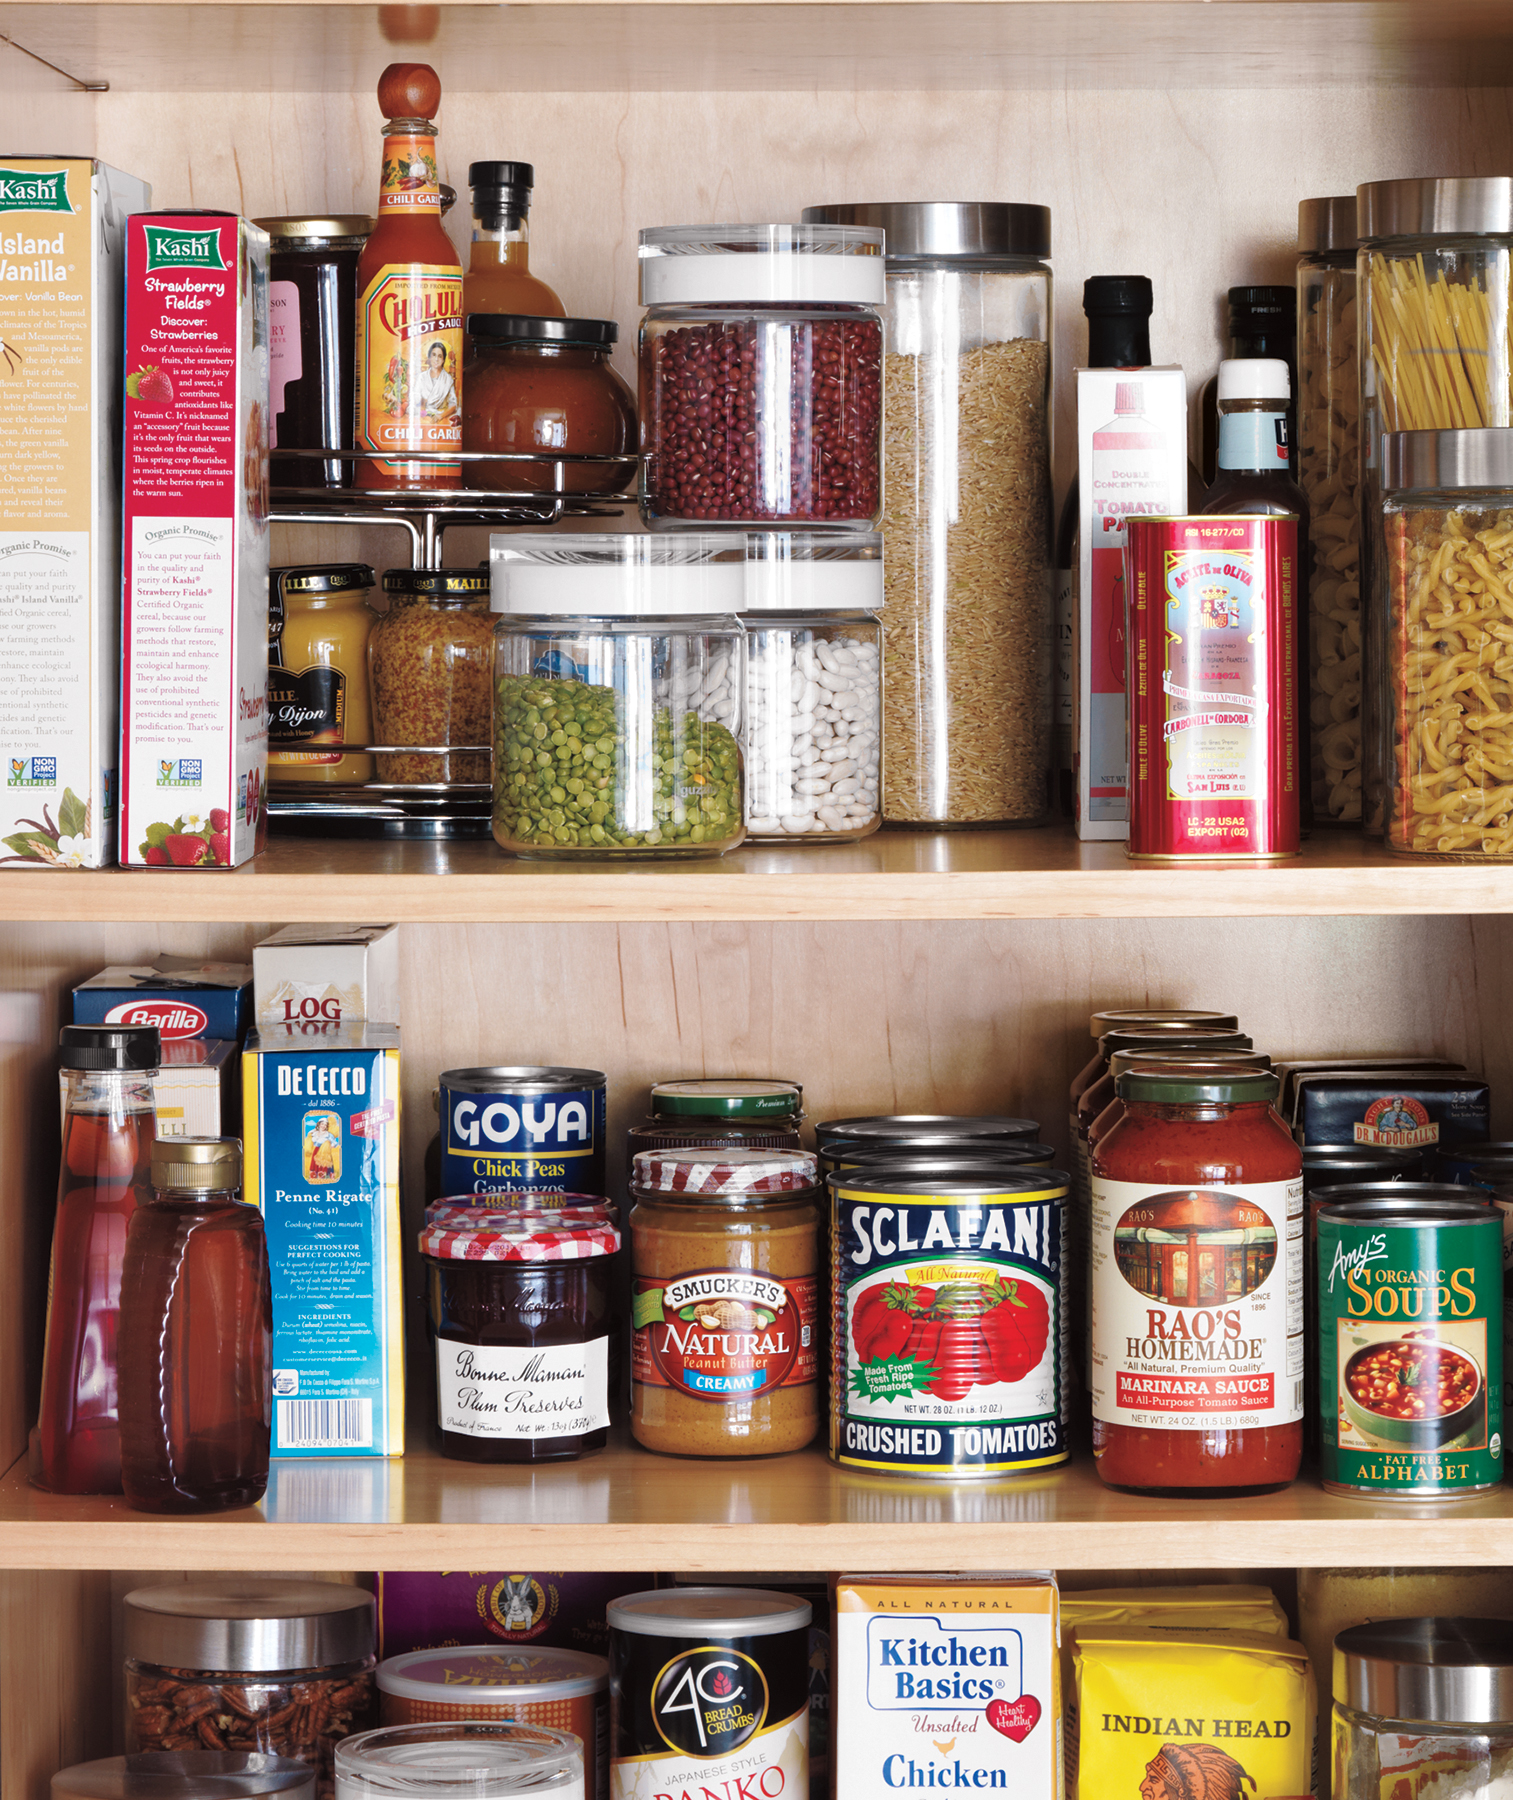 Pantry shelves with spices